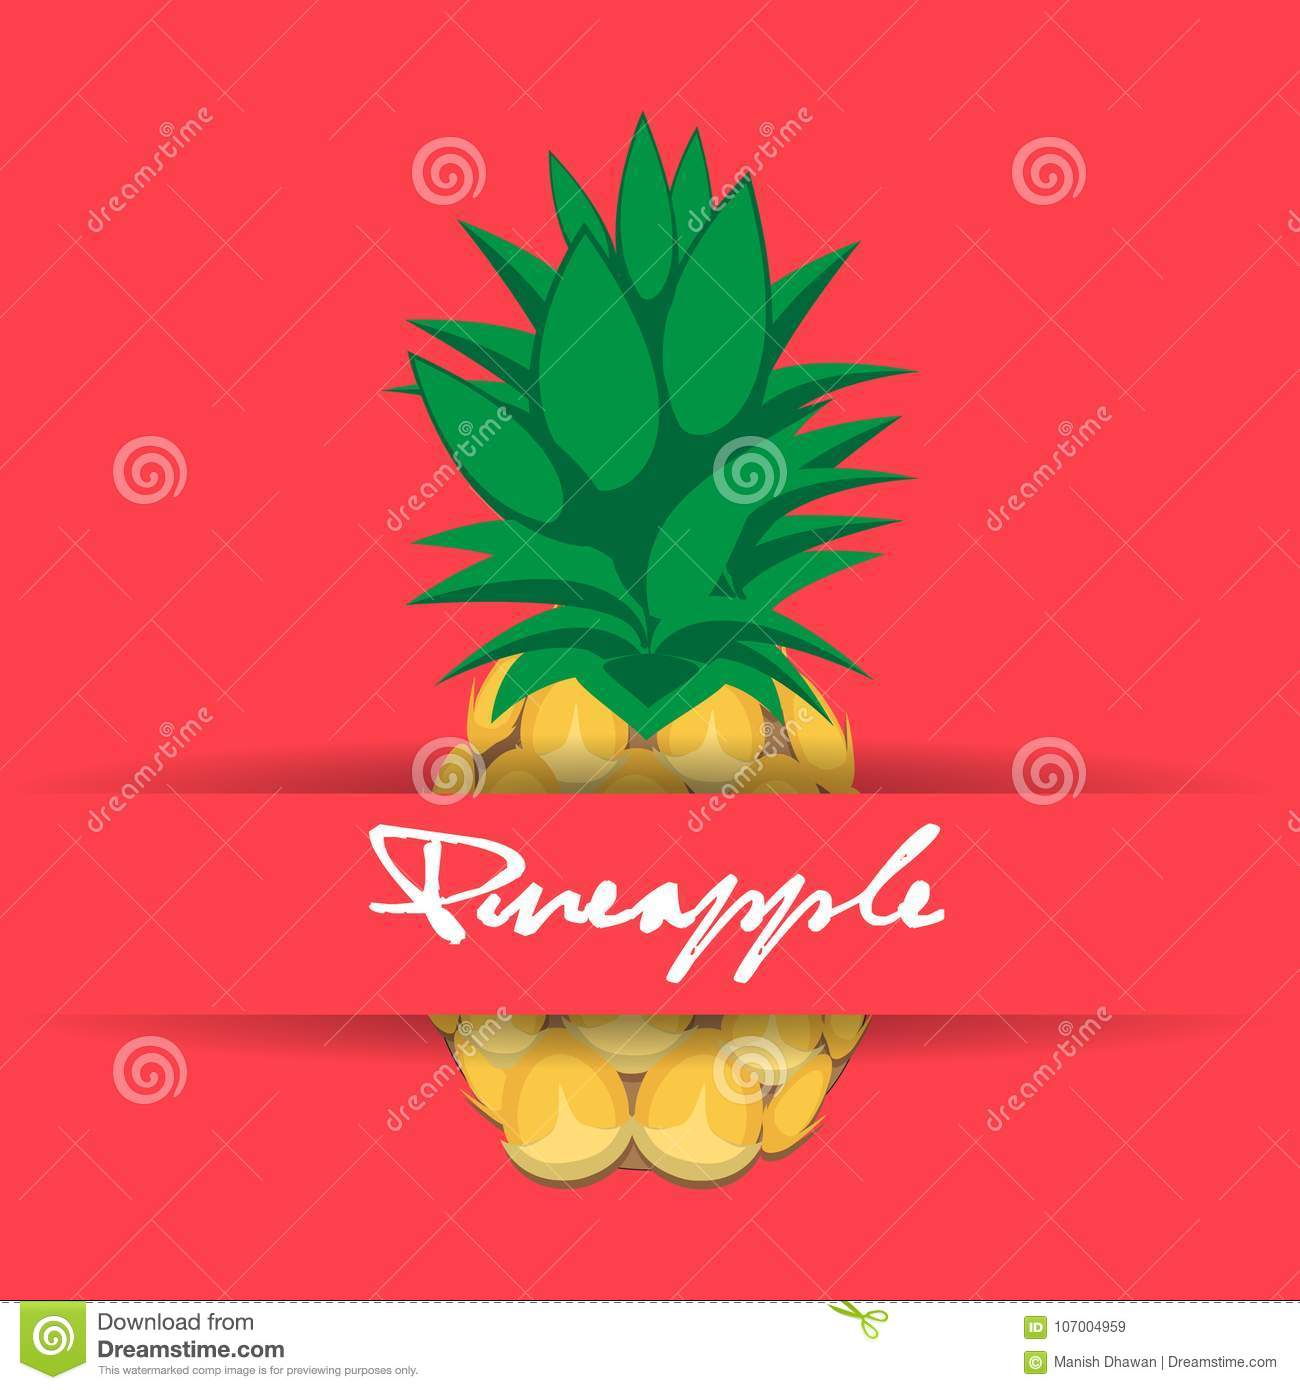 9c6f205be759 Contour Pineapple Stock Illustrations – 762 Contour Pineapple Stock  Illustrations, Vectors & Clipart - Dreamstime